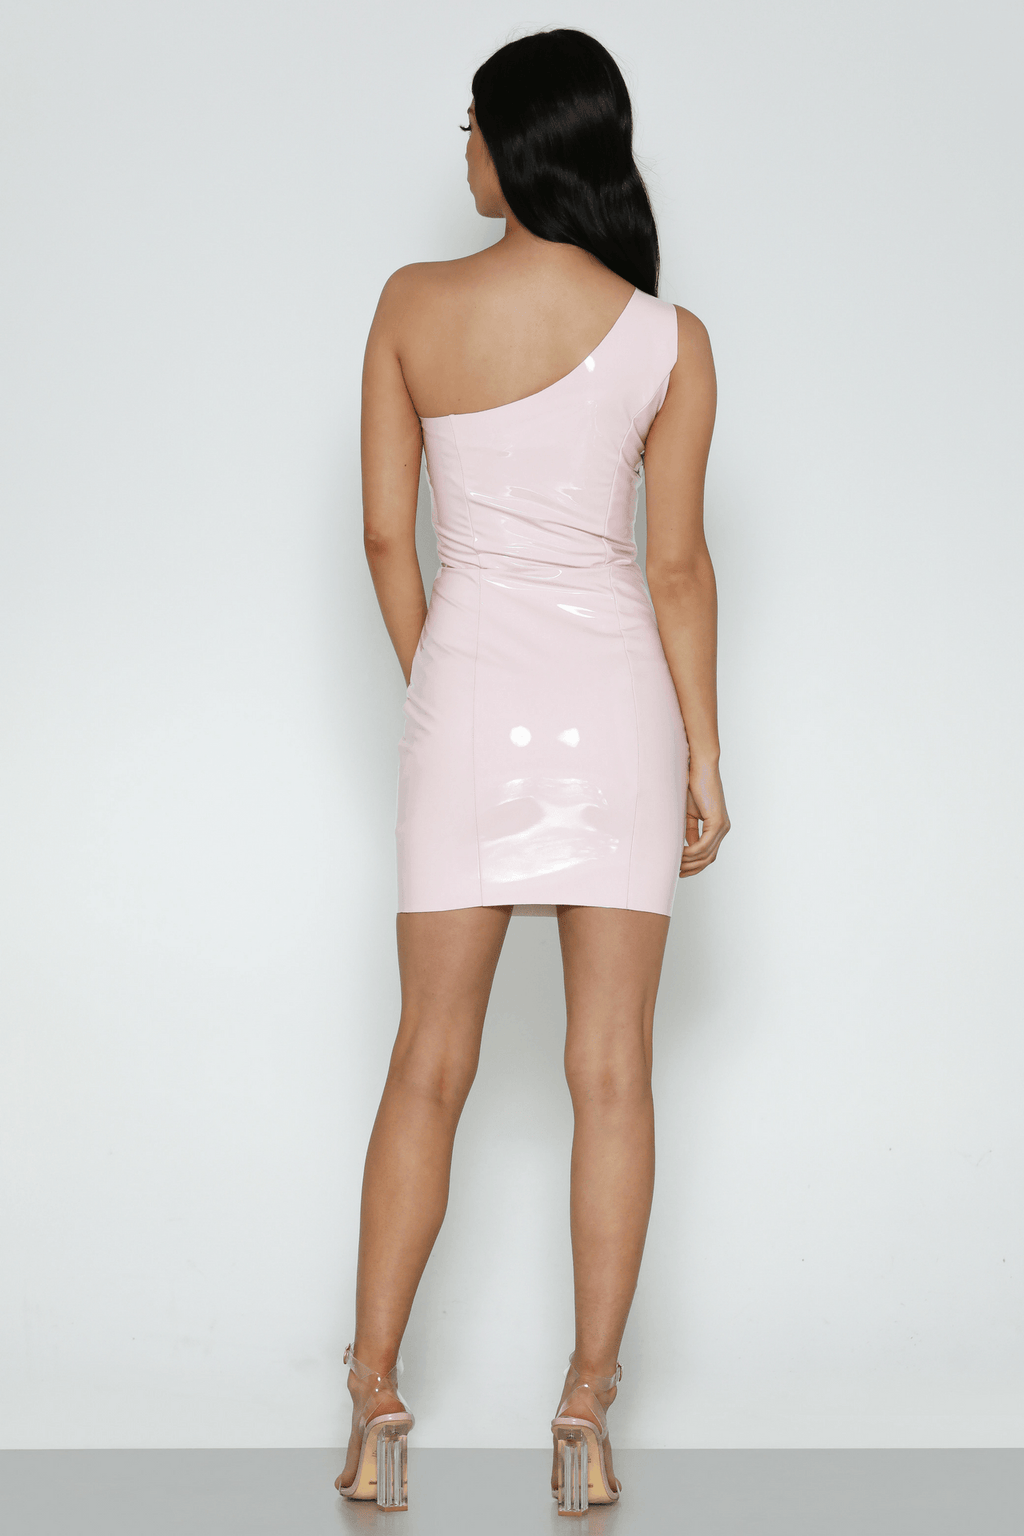 Polly Latex Dress In Pink - Bad AF Fashion